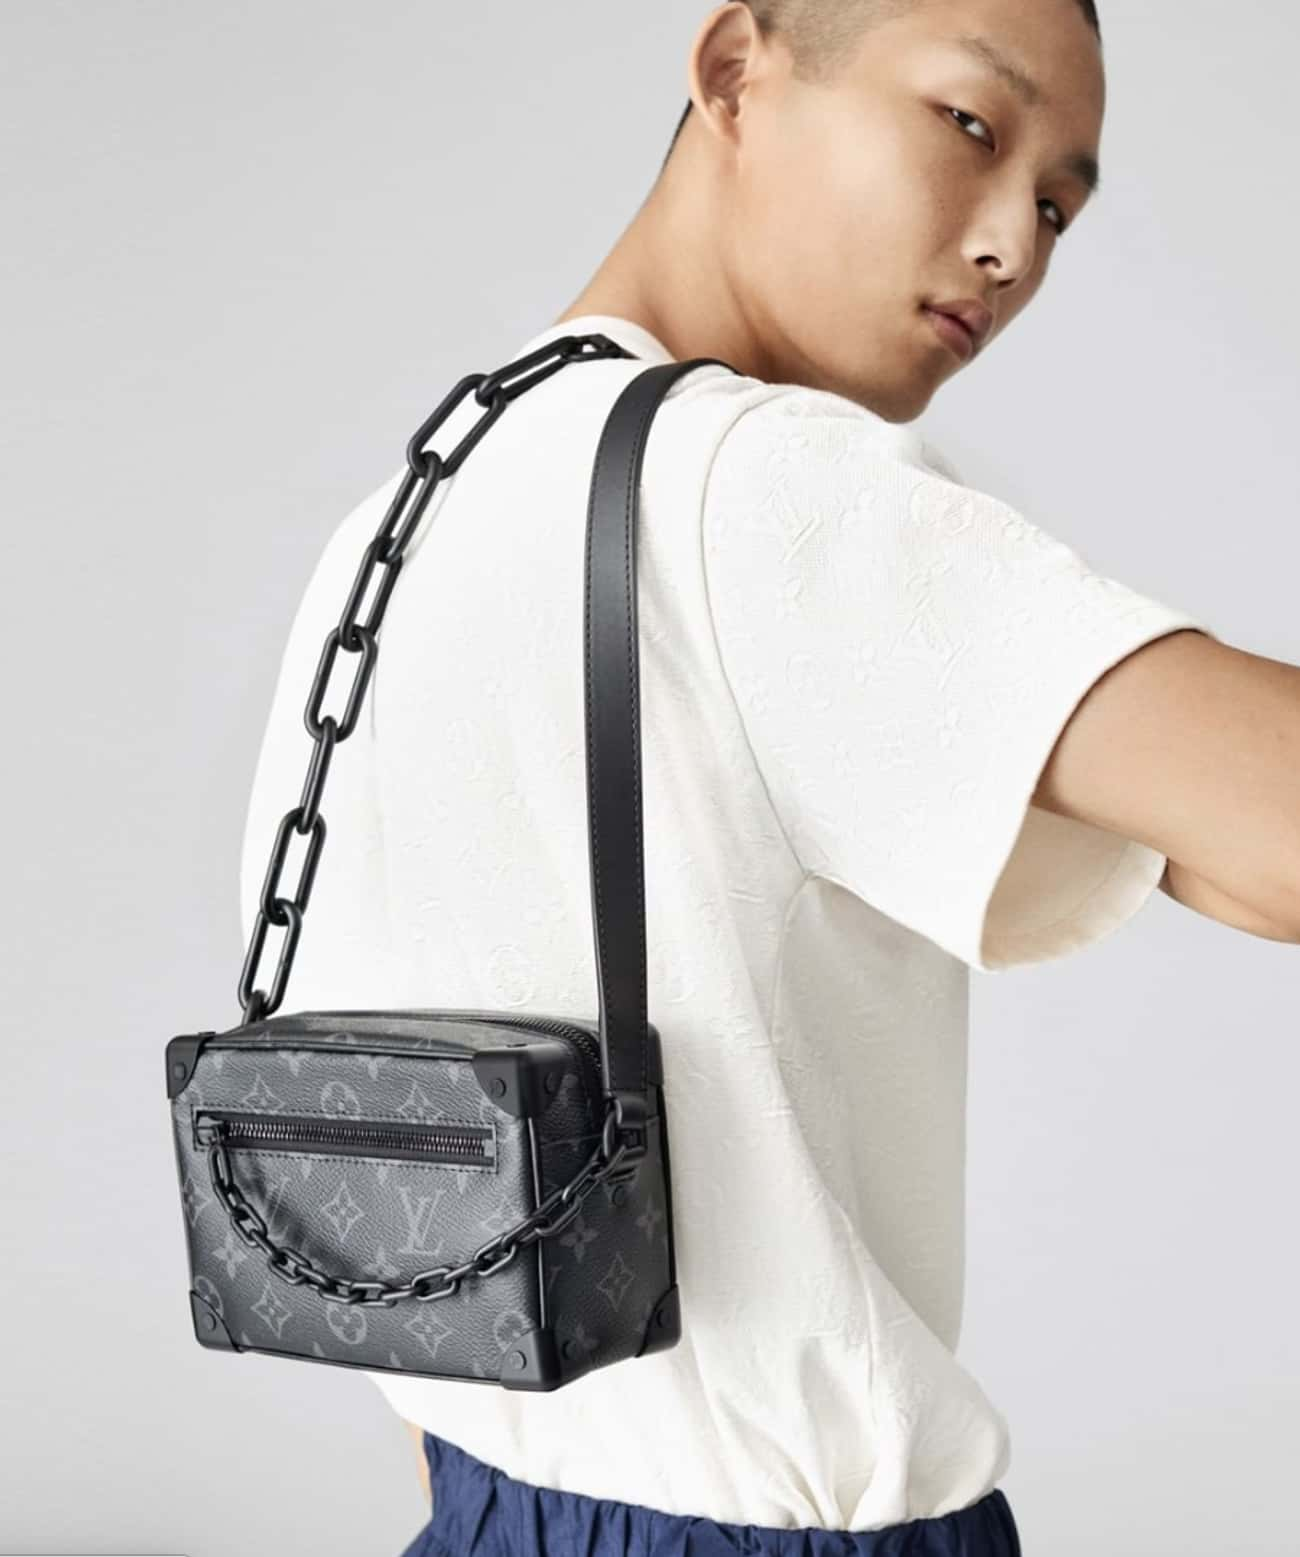 Louis Vuitton is listed (or ranked) 4 on the list The Top Fashion Designers for Men